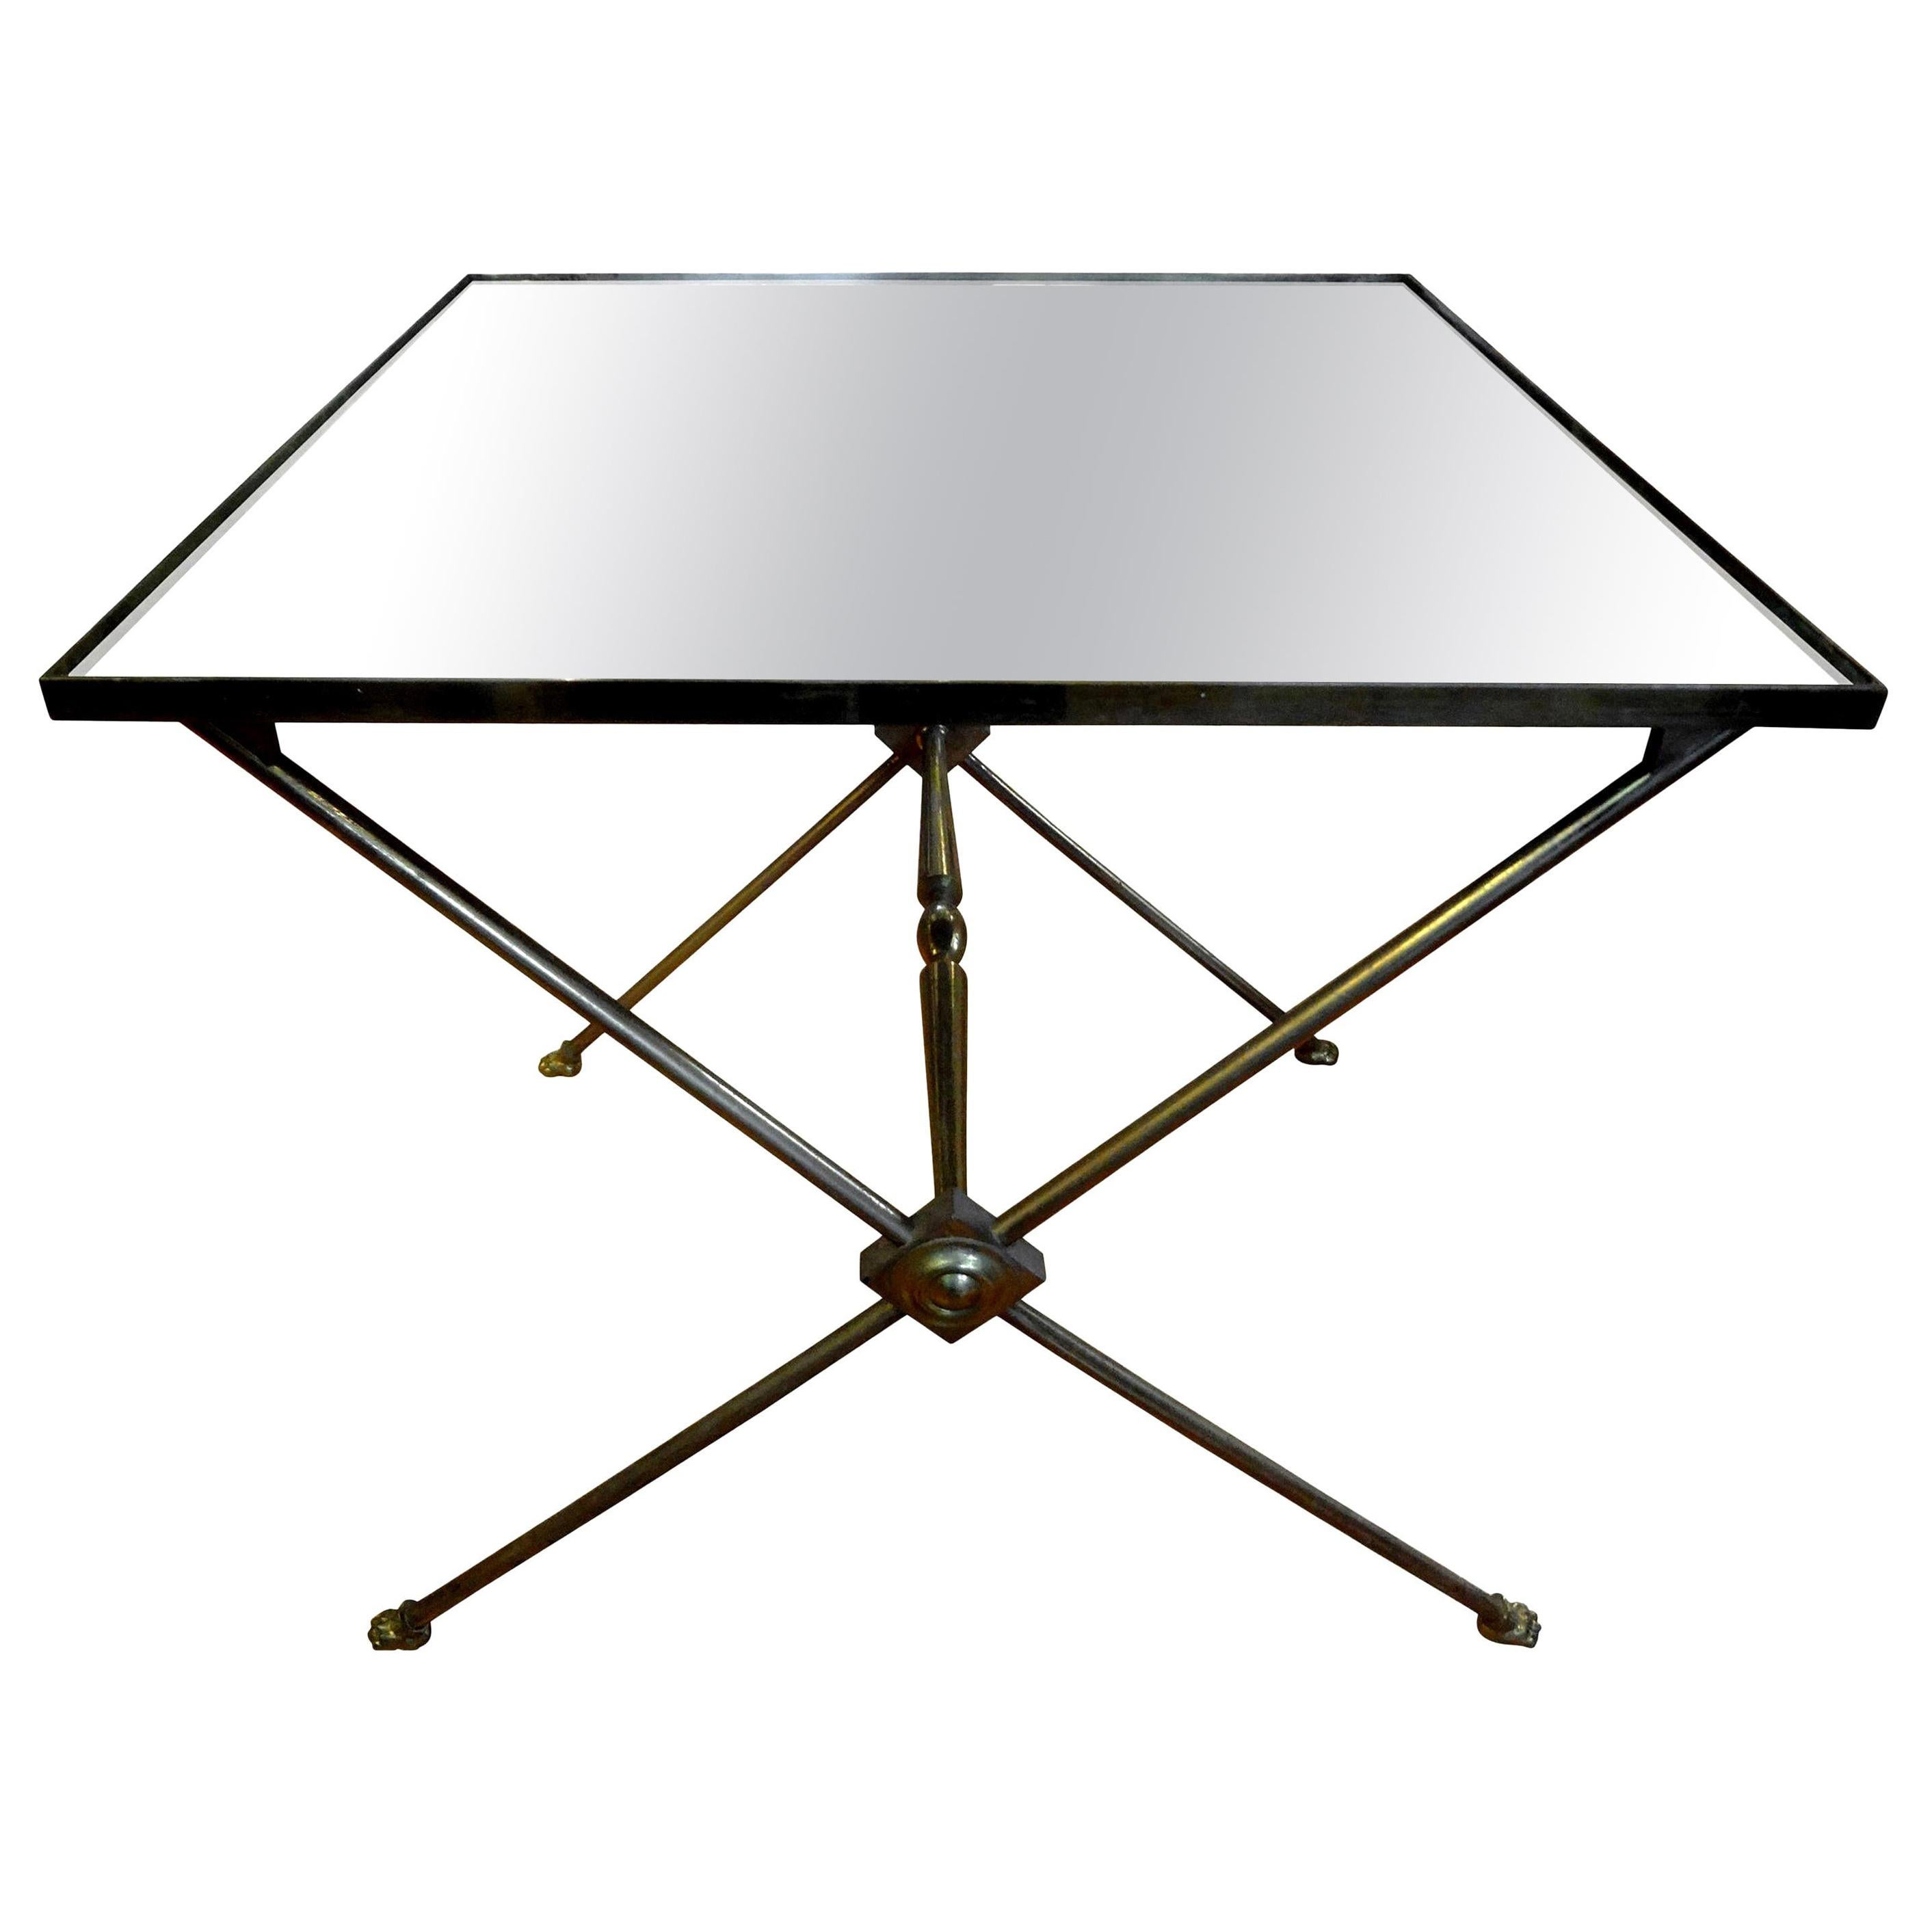 French Maison Jansen Style Brass Table with Mirrored Top